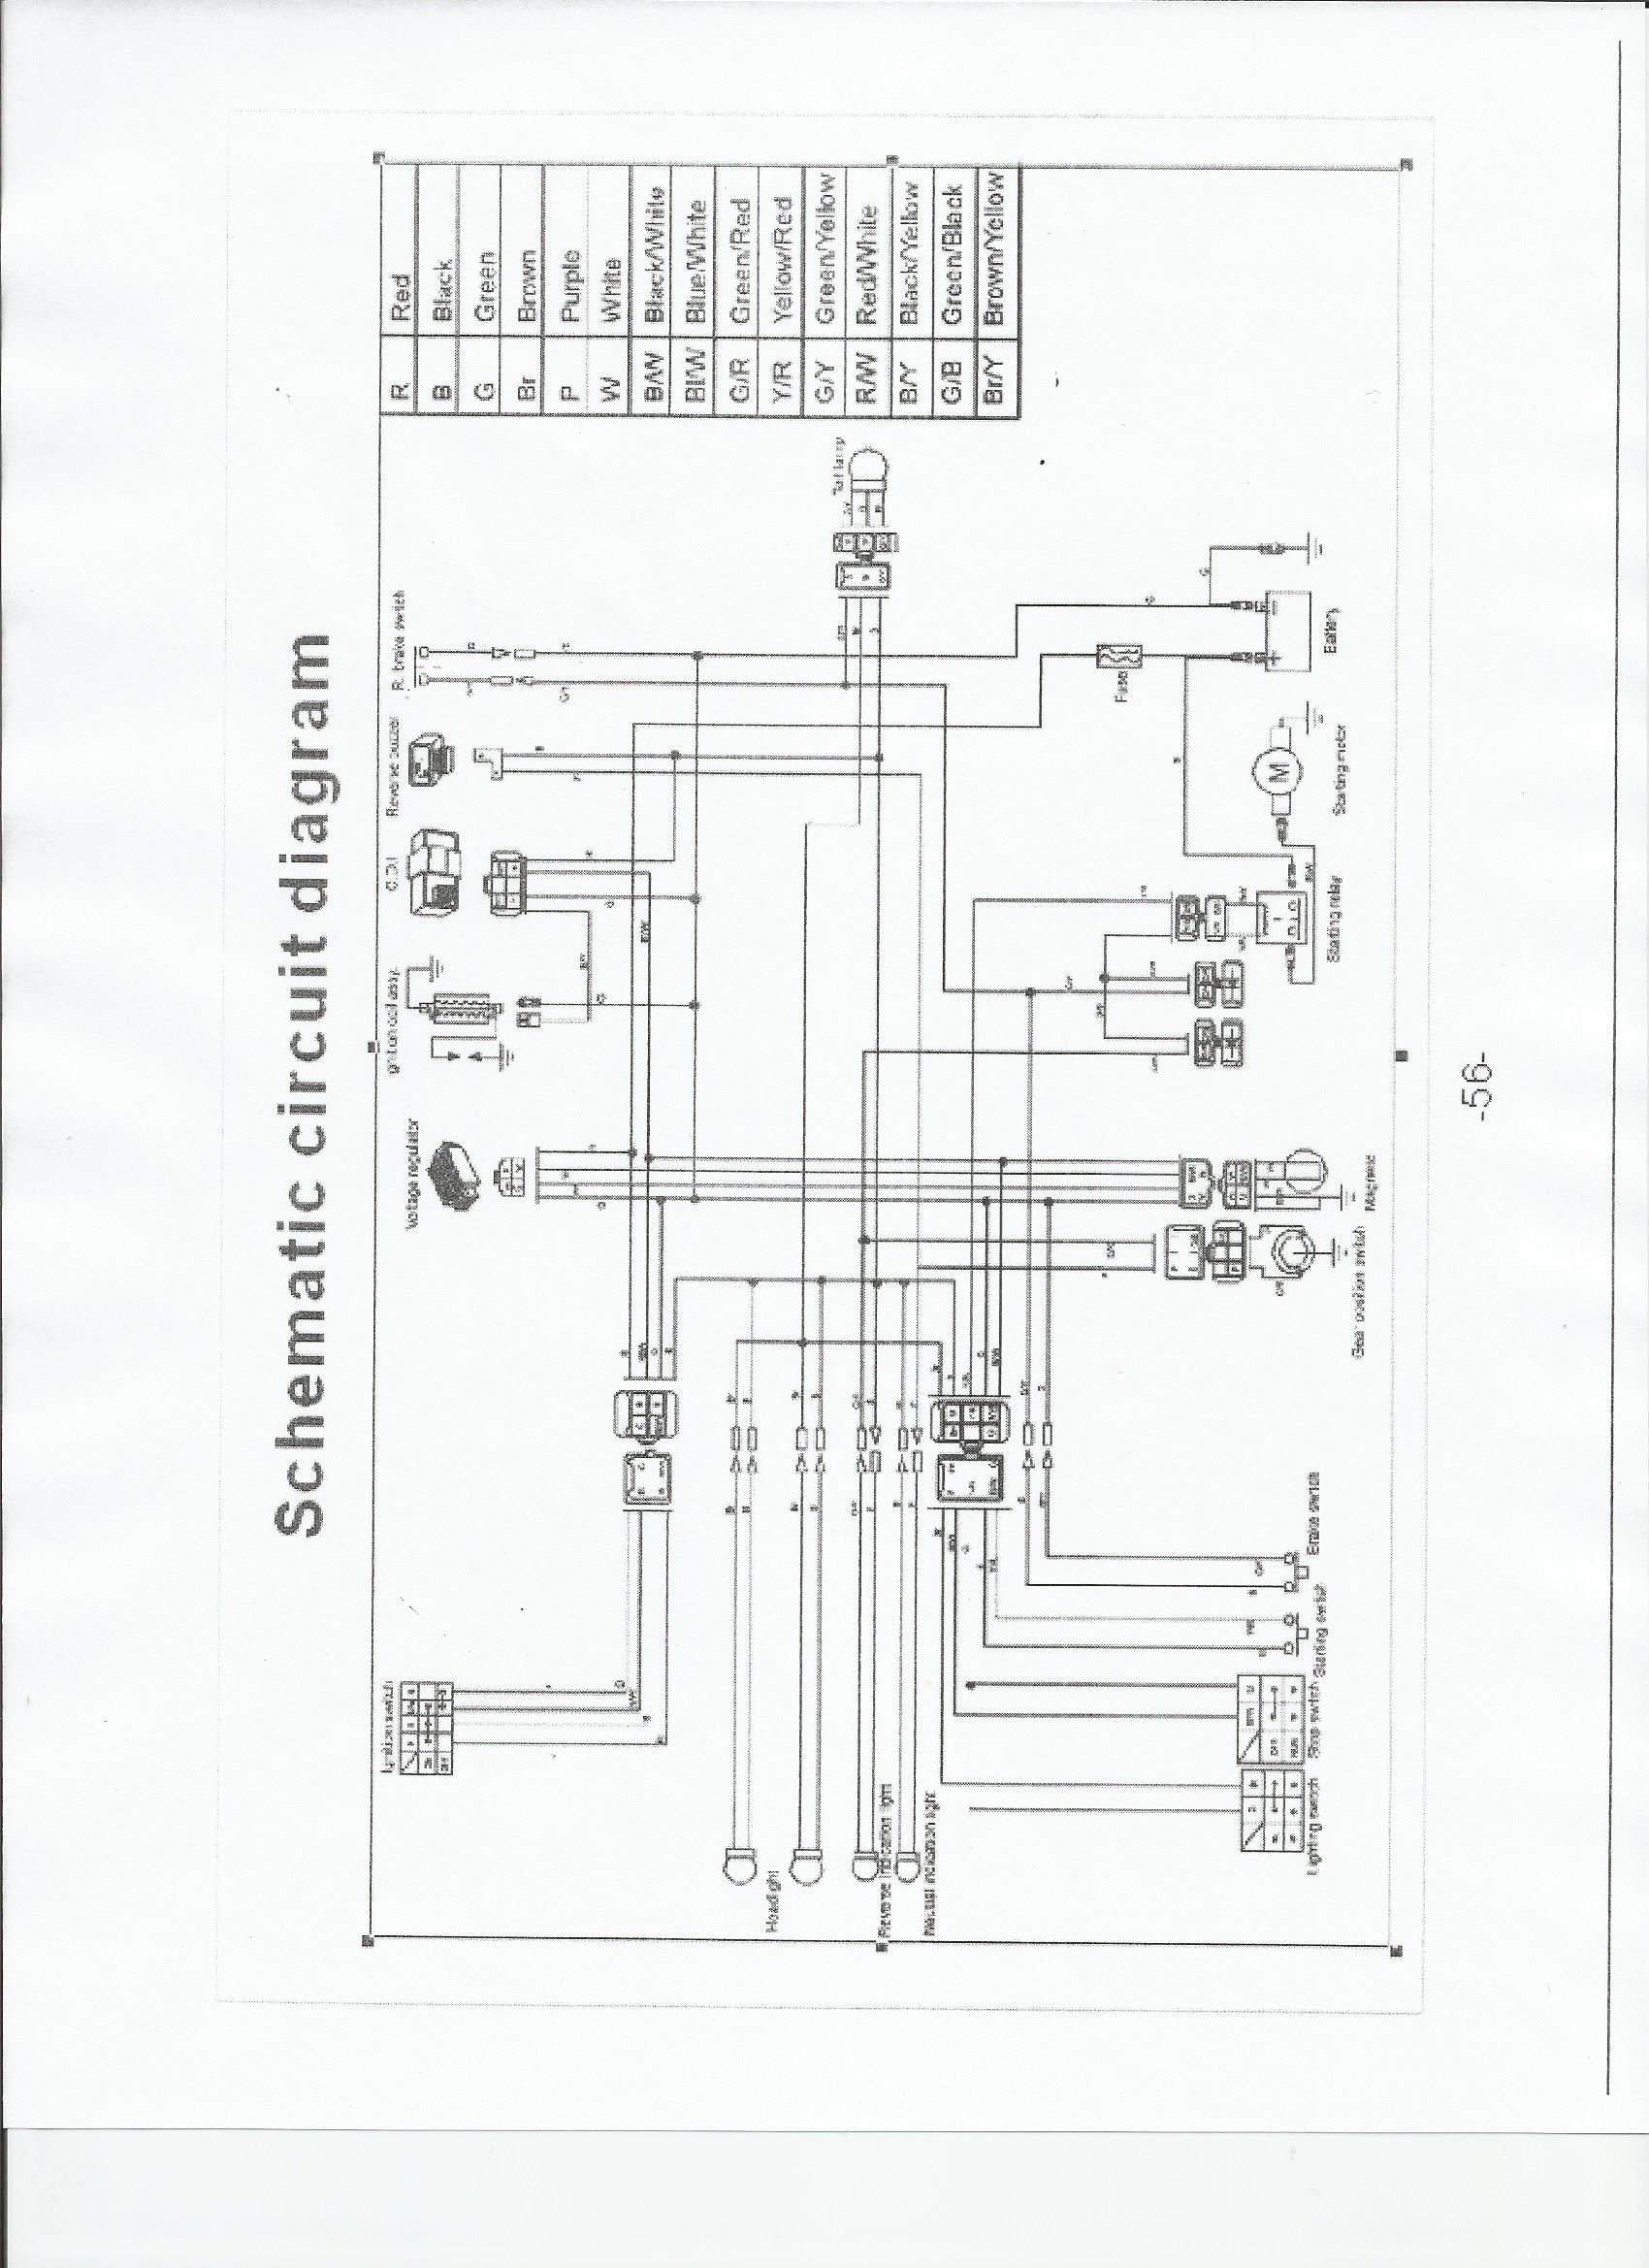 Switchable Power Run Garmin as well 215268823 TaoTao Mini And Youth ATV Wiring Schematic together with 856165 John Deere Tractor With Loader Igcd0517 Parts additionally Rotax 650 Engine Diagram likewise Honda Z50 Engine Diagram. on atv wiring diagram